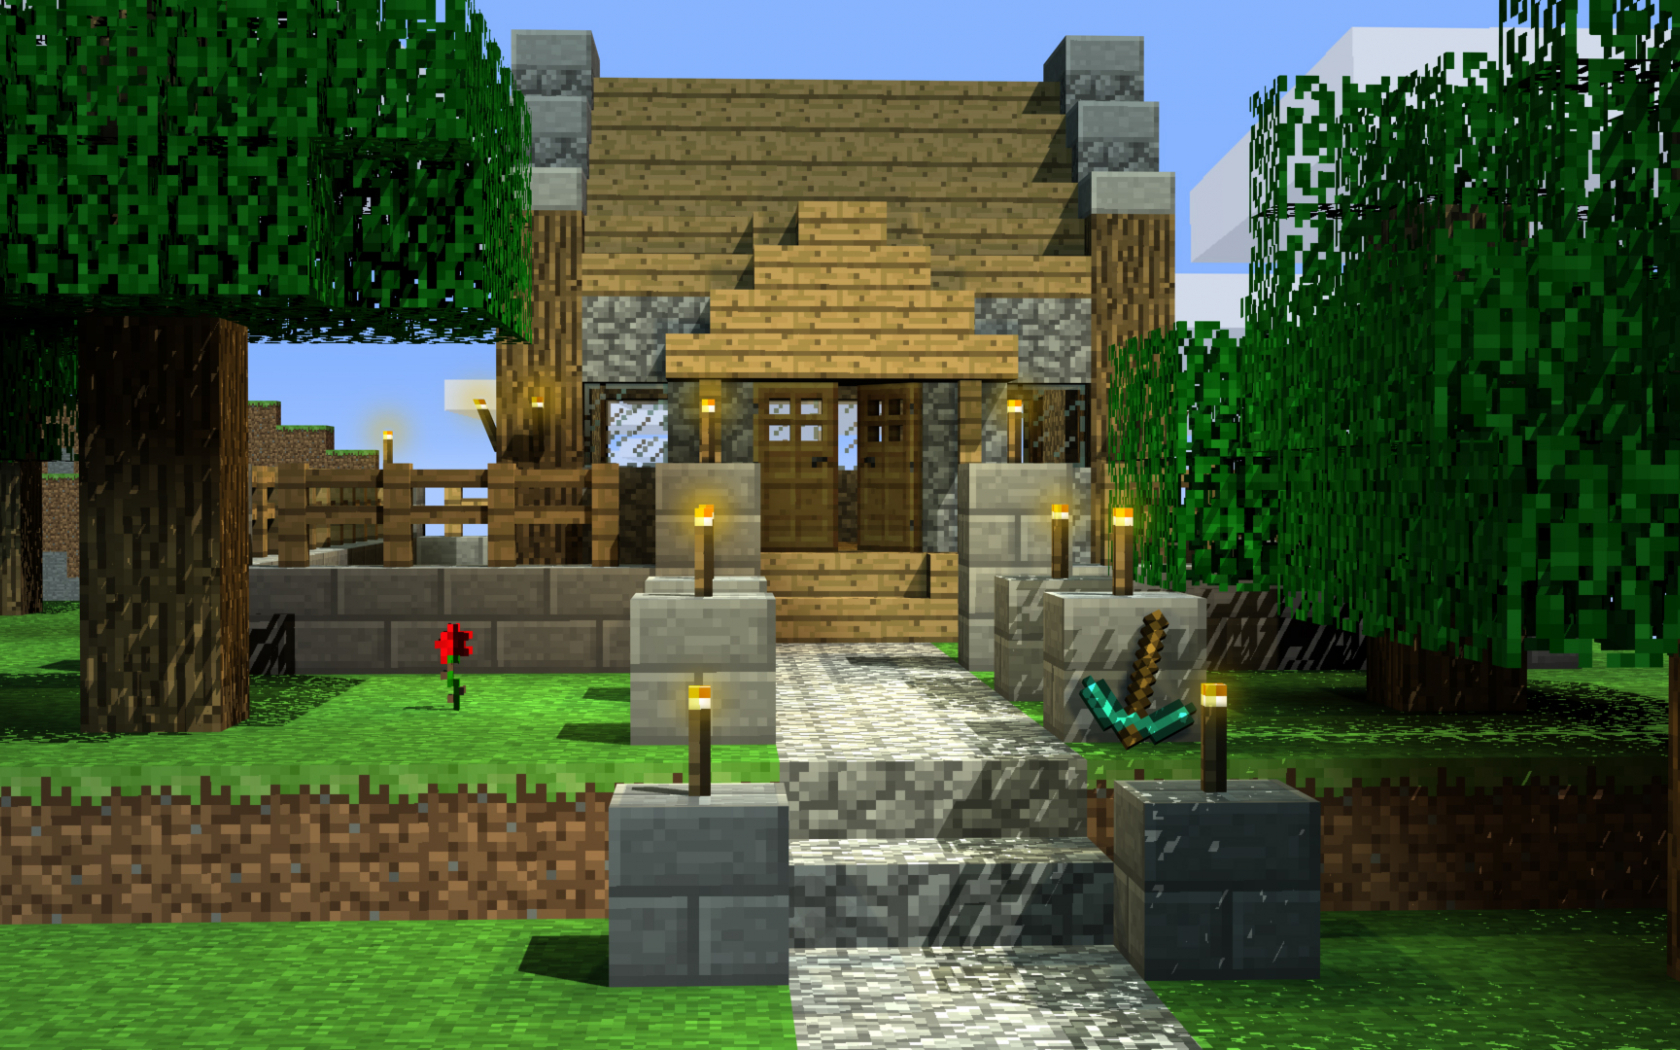 Free Download Minecraft Cozy Cottage Wallpaper Of Cozy for The Cozy Red Cottage 2021